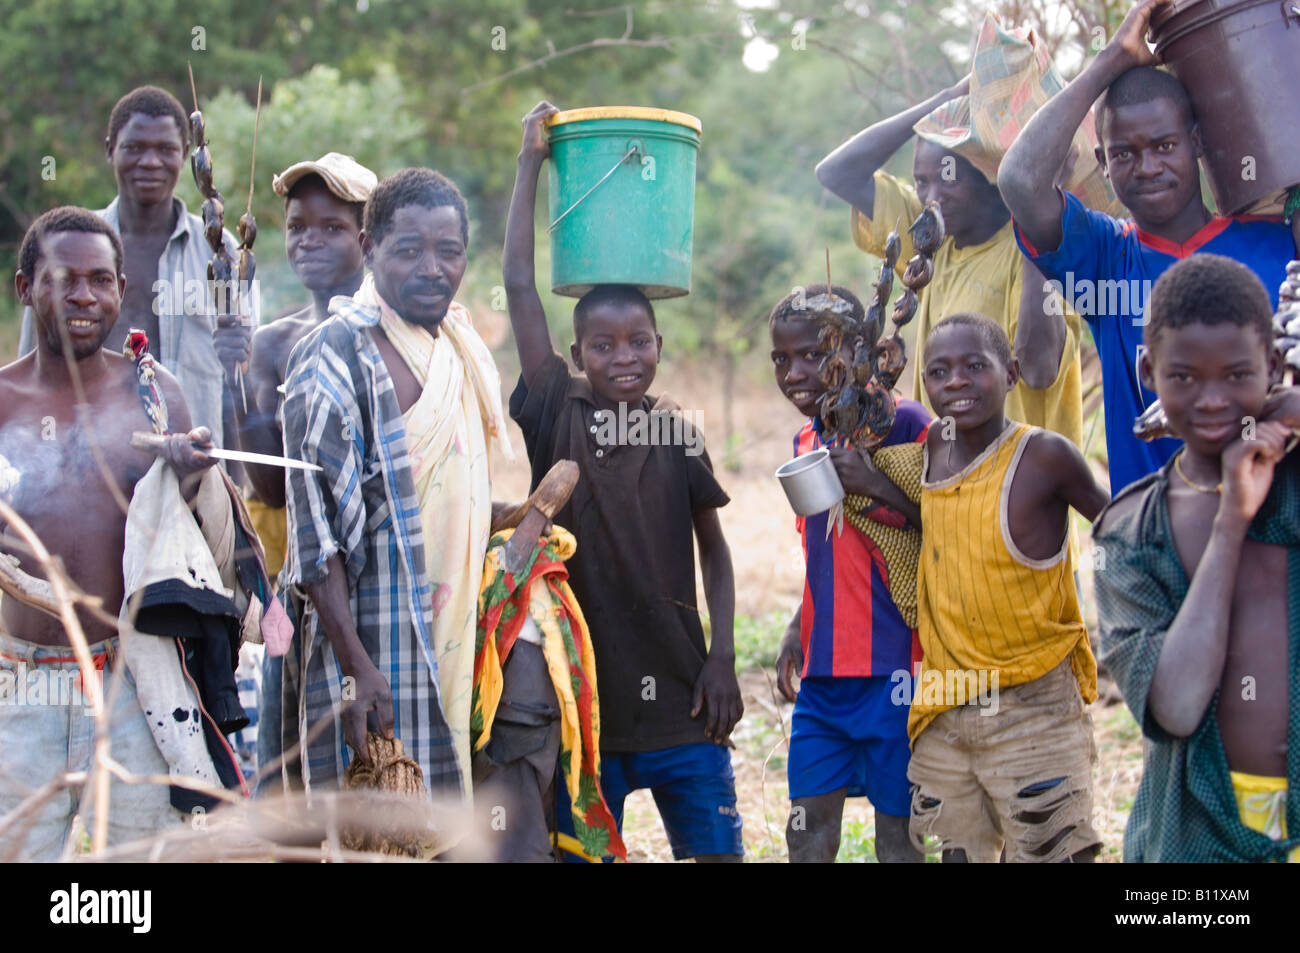 Group of people hunting for nutritious food in Niassa Reserve ( Mozambique ) collect catfish on a skewer. - Stock Image